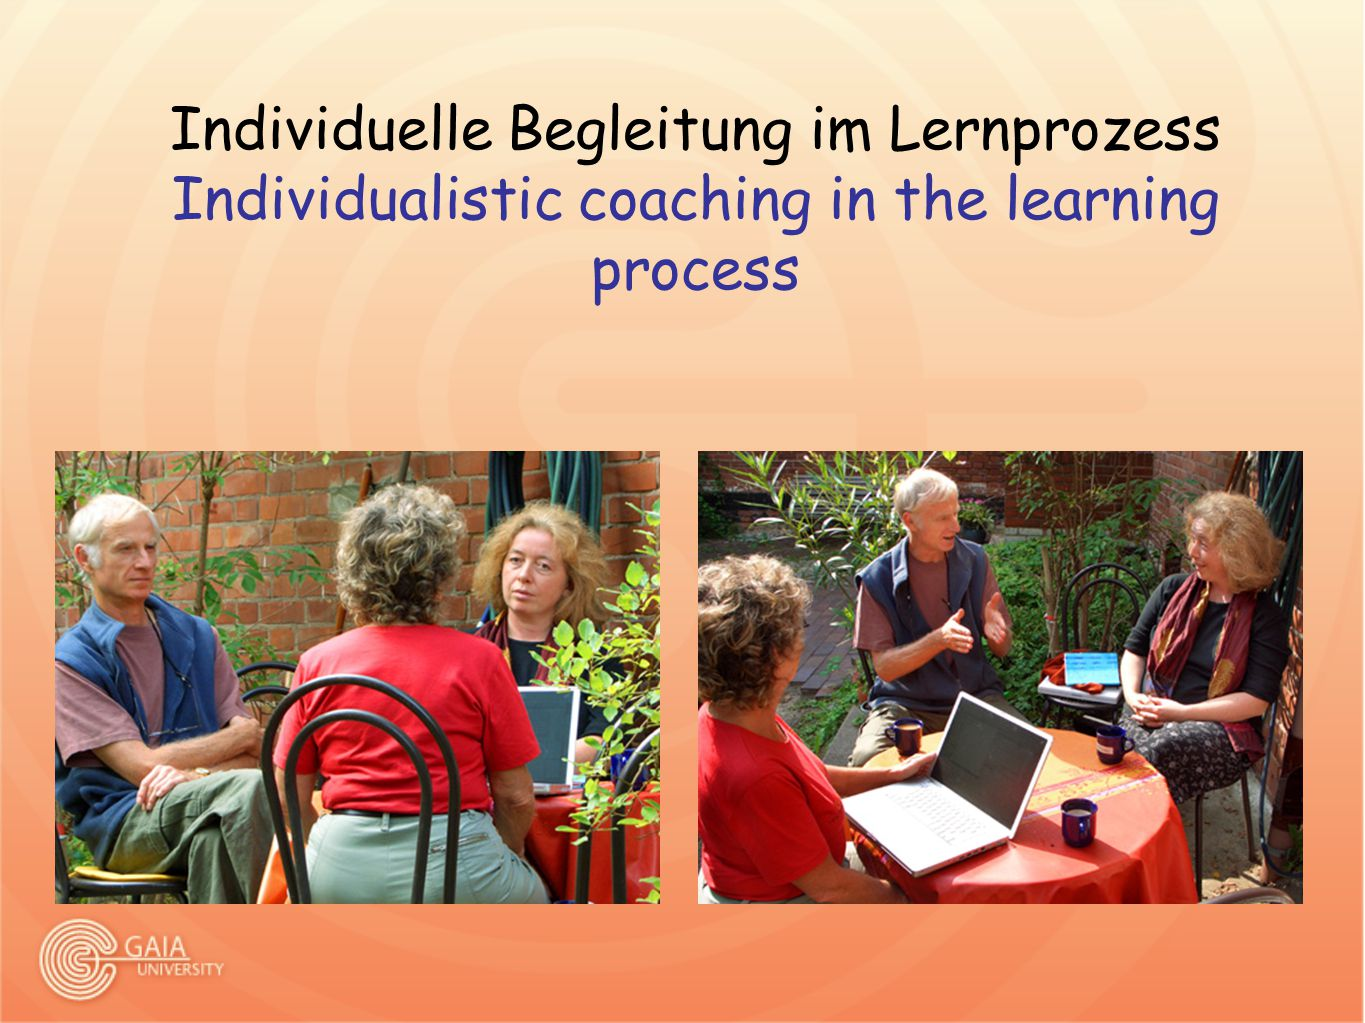 Individuelle Begleitung im Lernprozess Individualistic coaching in the learning process